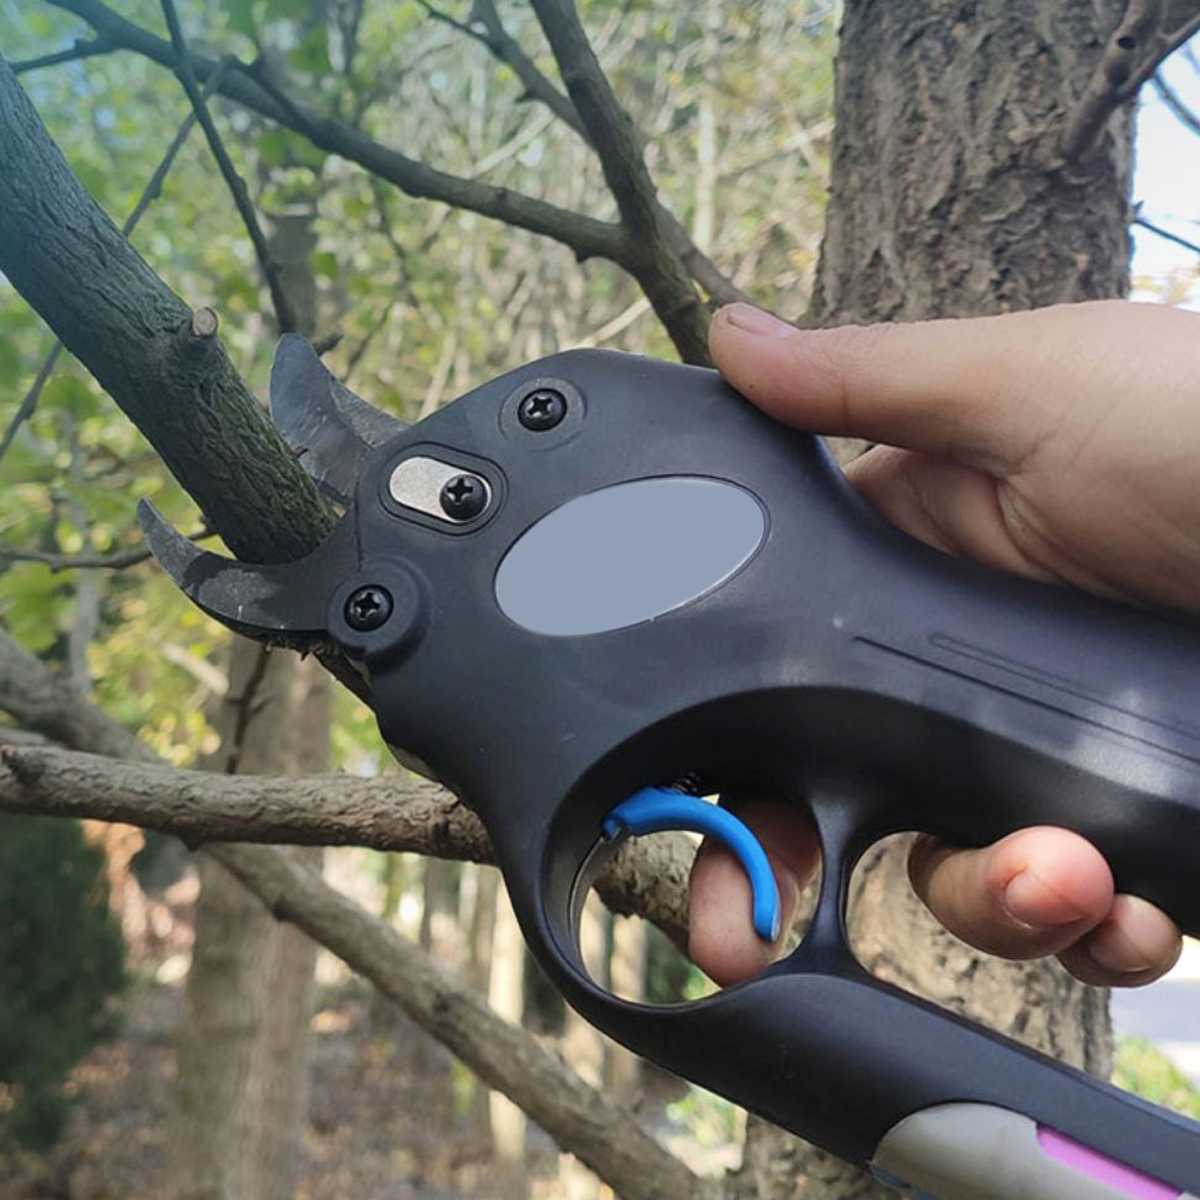 12V Wireless Electric Rechargeable Garden Scissors for Pruning Branches and stems with 4 Li-ion Battery 7